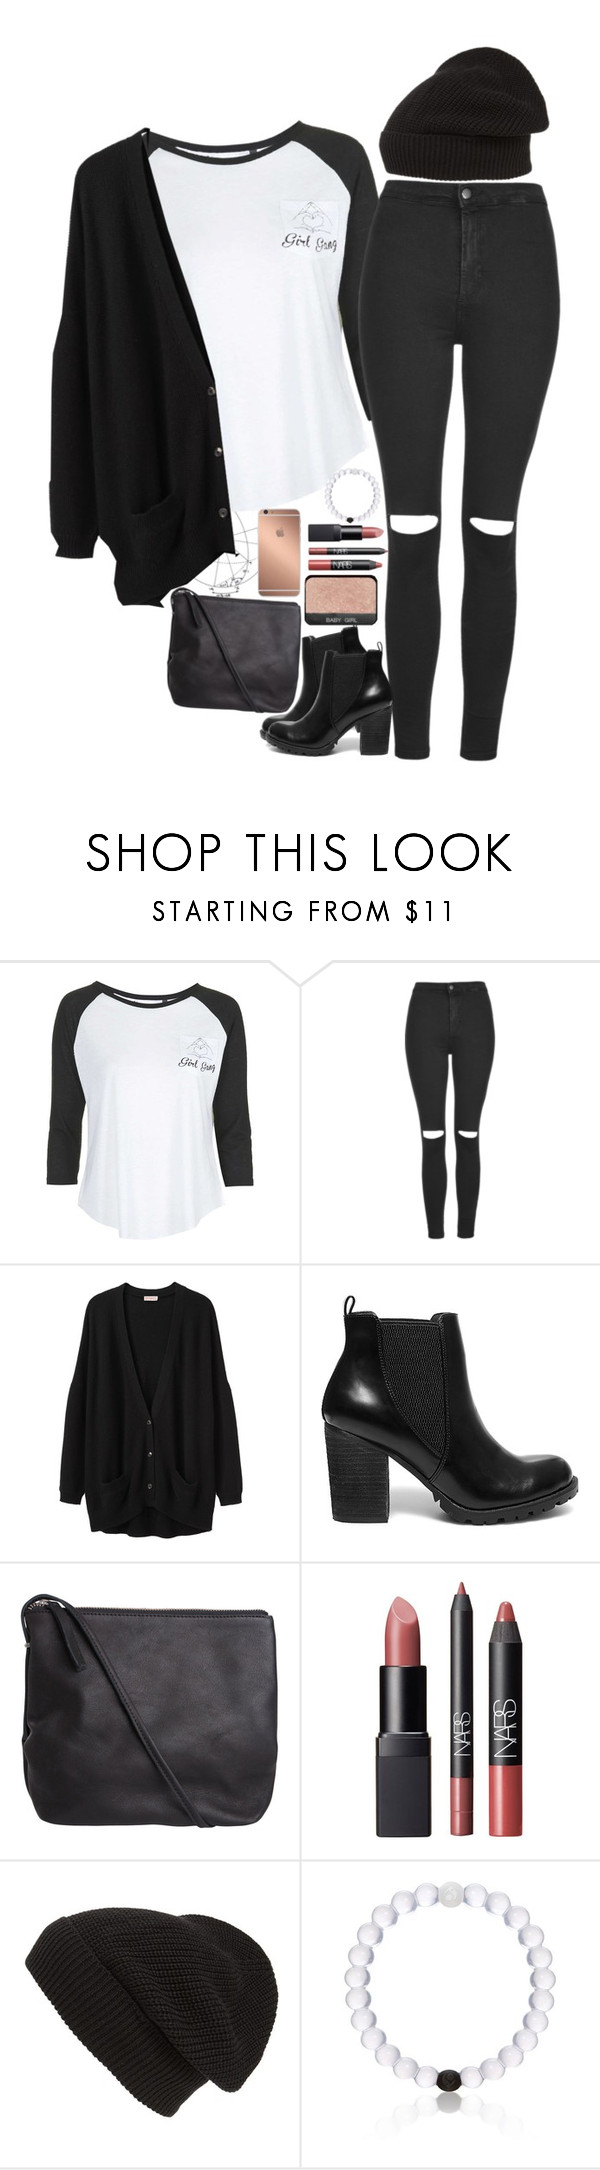 """Untitled #2408"" by sisistyle ❤ liked on Polyvore featuring Tee and Cake, Topshop, Organic by John Patrick, Steve Madden, Pieces, NARS Cosmetics, Phase 3, Everest and Mura"